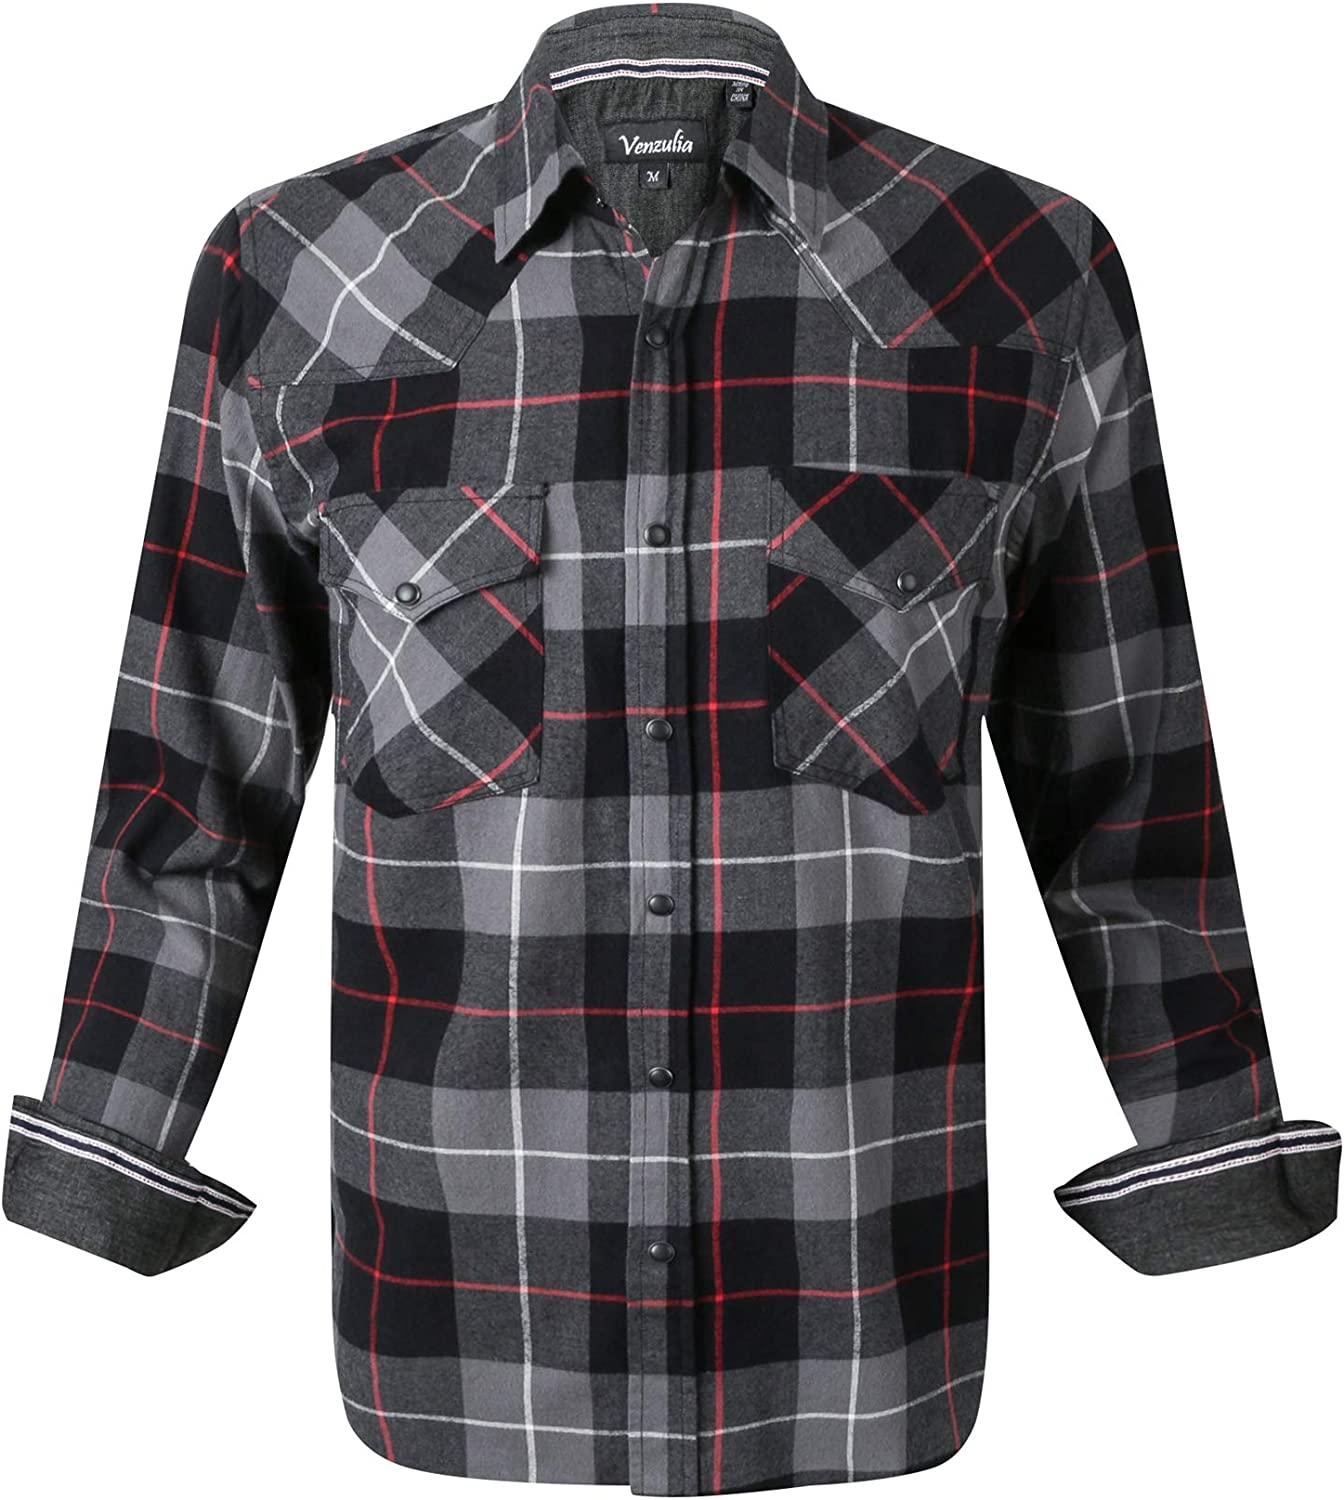 Men's Western Casual Shirt Two Pocket Long Sleeve Snap Shirt